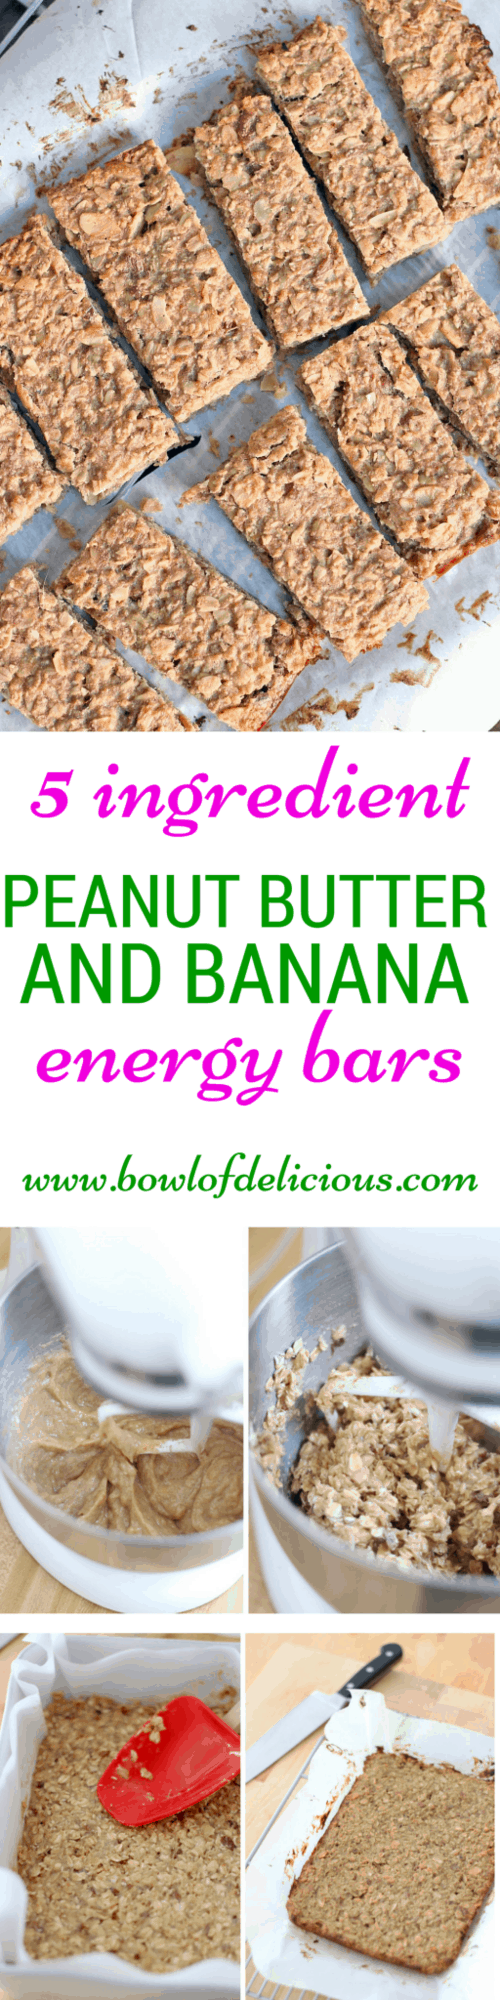 These peanut butter and banana energy bars are easy to make, have only 5 natural, healthy ingredients and are packed full of carbs, healthy fats, and protein. The perfect, delicious snack to get you going! #energybars #glutenfree #highprotein #wholegrain